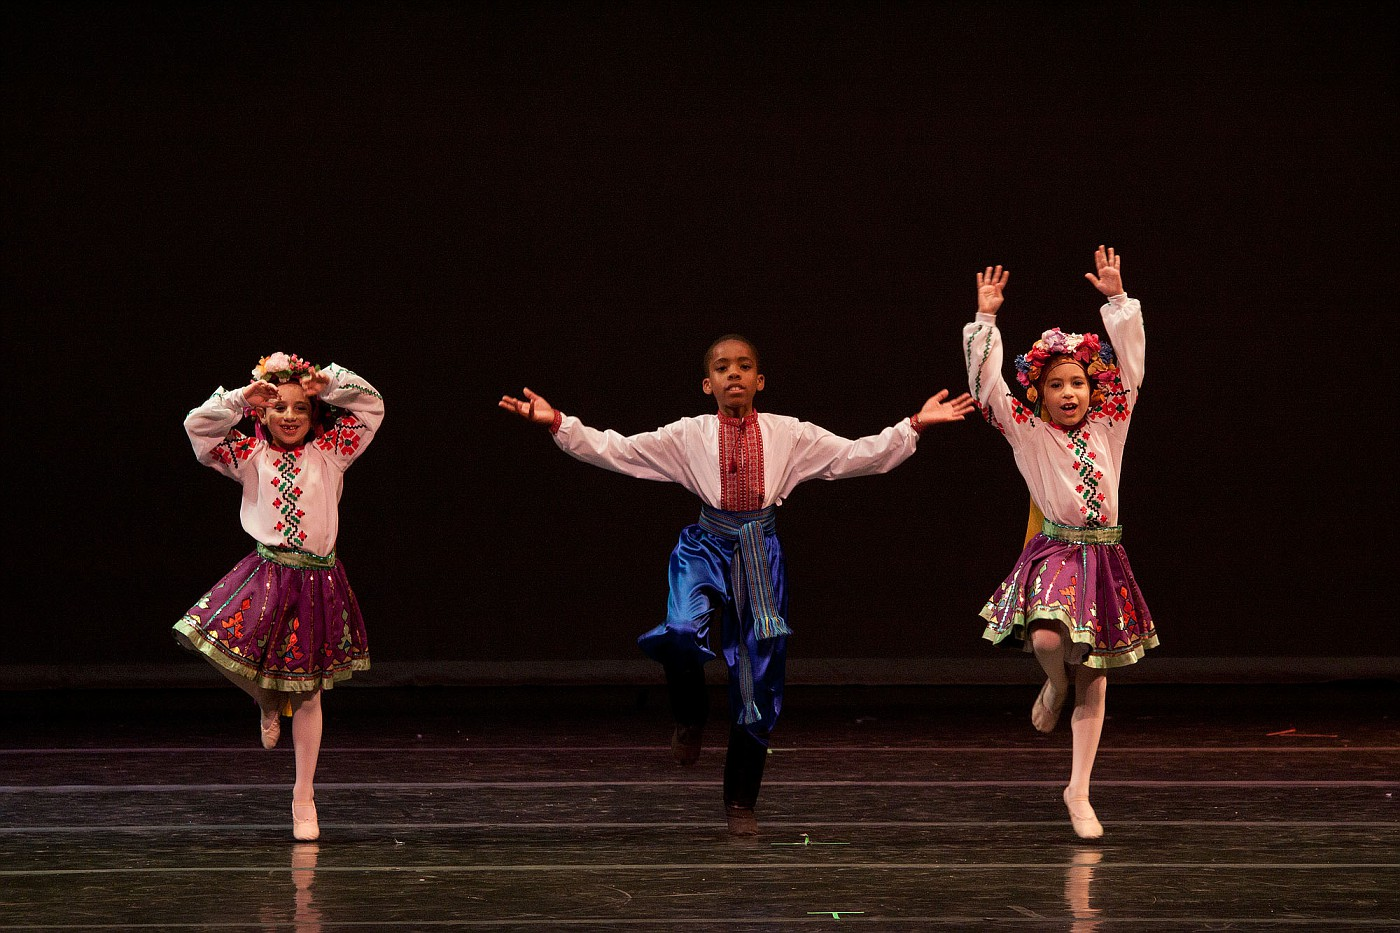 portrait-photography-children-ballet-20100617_0042.jpg